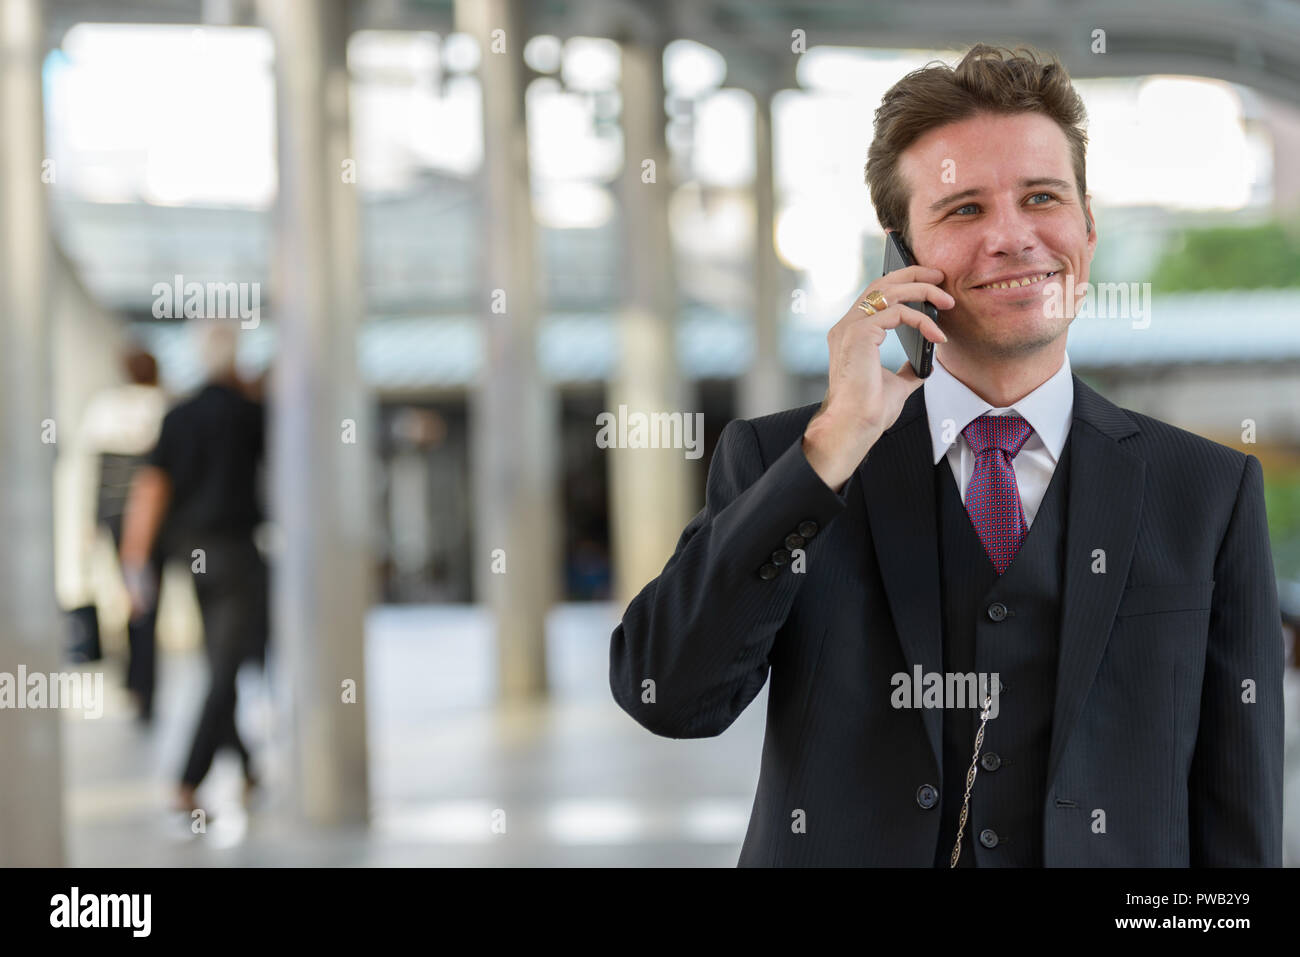 Happy thoughtful businessman smiling and talking on mobile phone - Stock Image